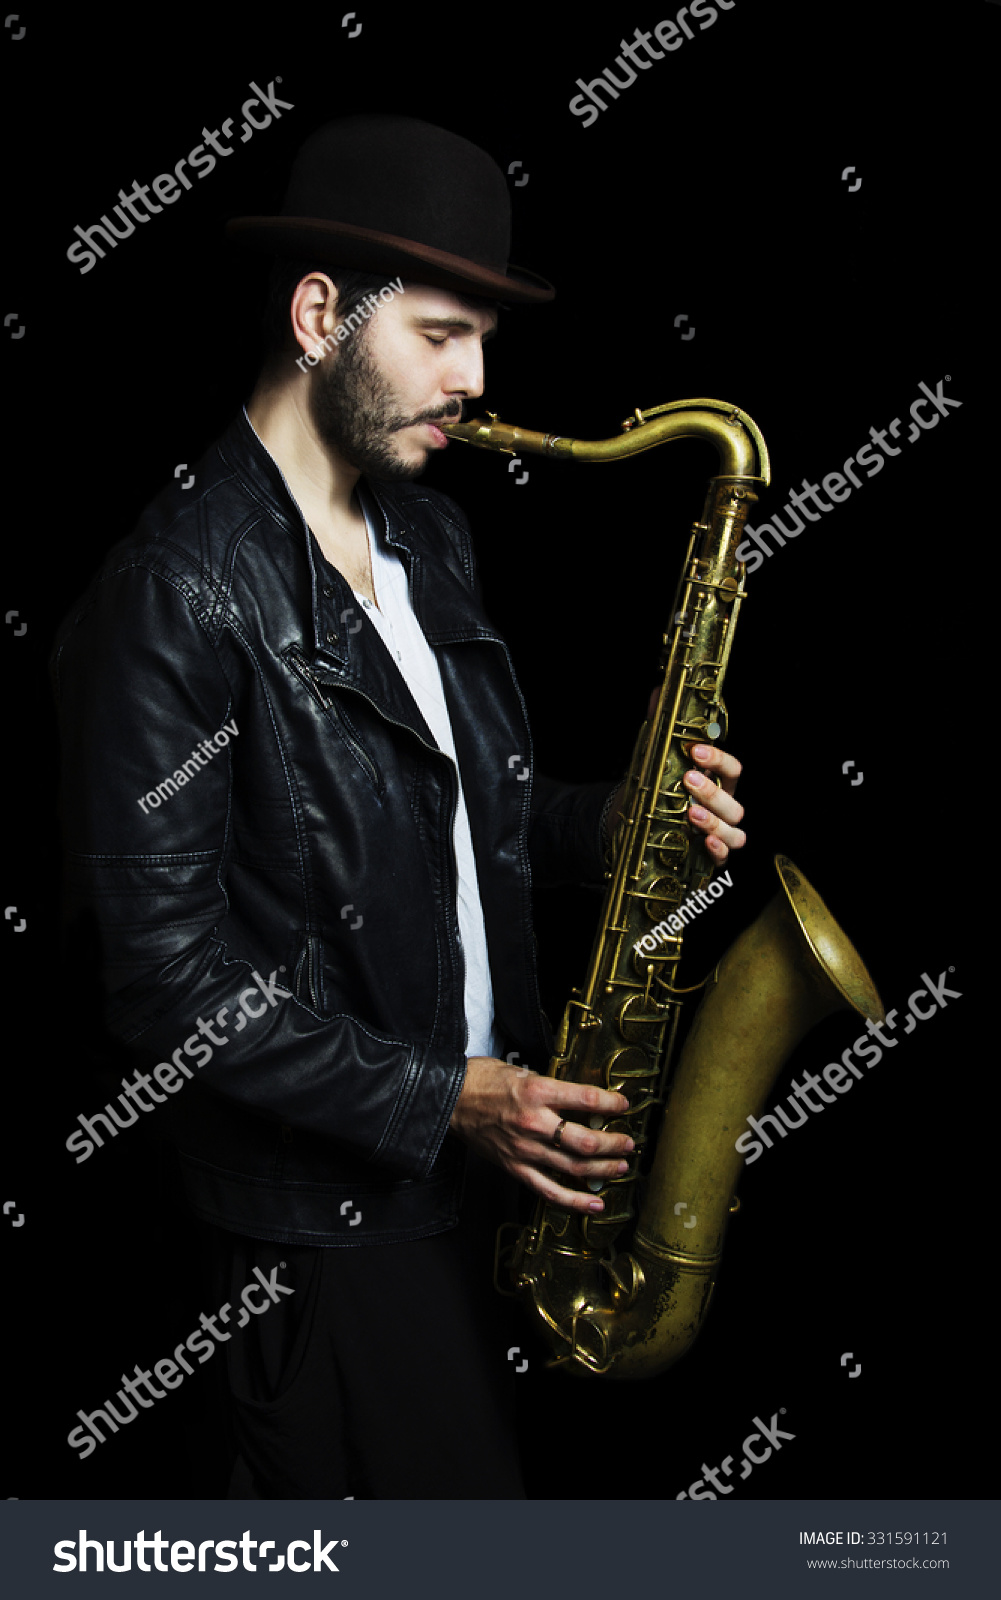 how to become a good saxophone player